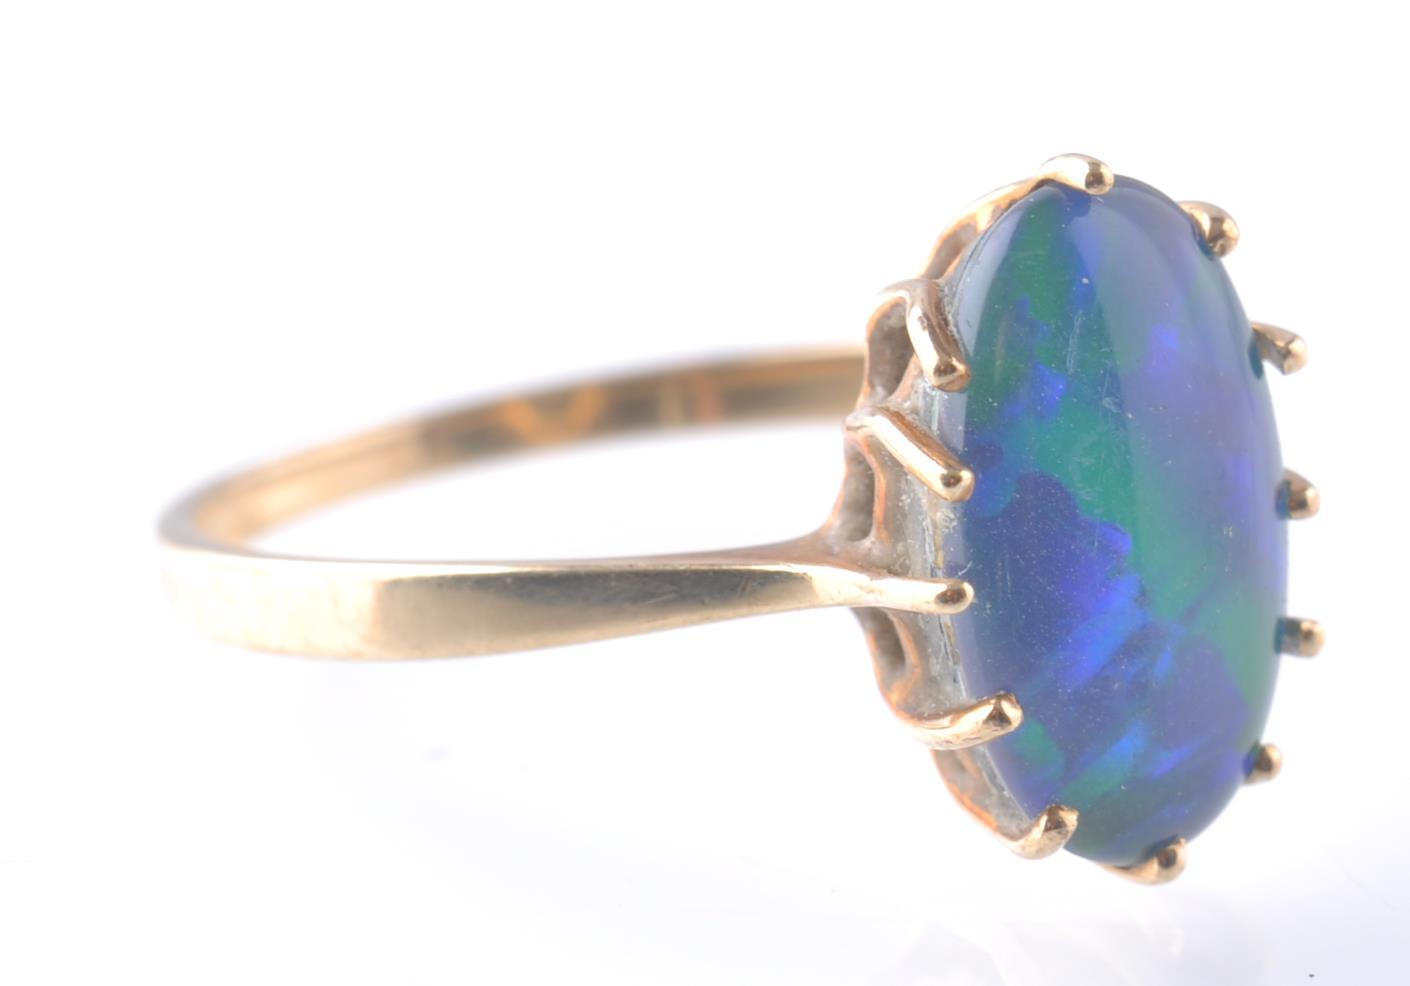 Lot 71 - 9CT / 375 GOLD AND BLACK OPAL RING